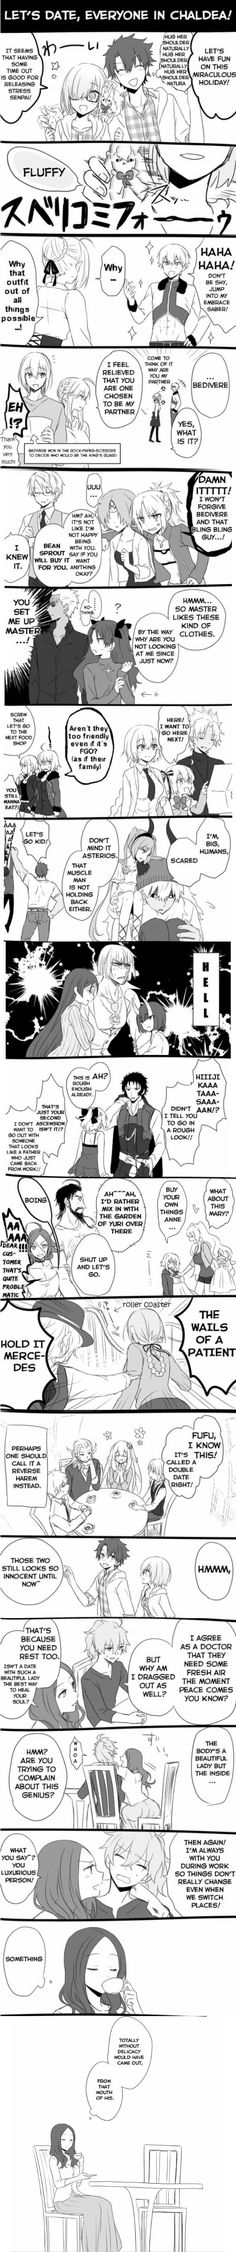 New Memes Funny Dating Ideas Fate Stay Night Series, Fate Stay Night Anime, Cute Comics, Funny Comics, Werewolf Games, One Punch Anime, Fate Servants, Memes Funny Faces, Fate Anime Series